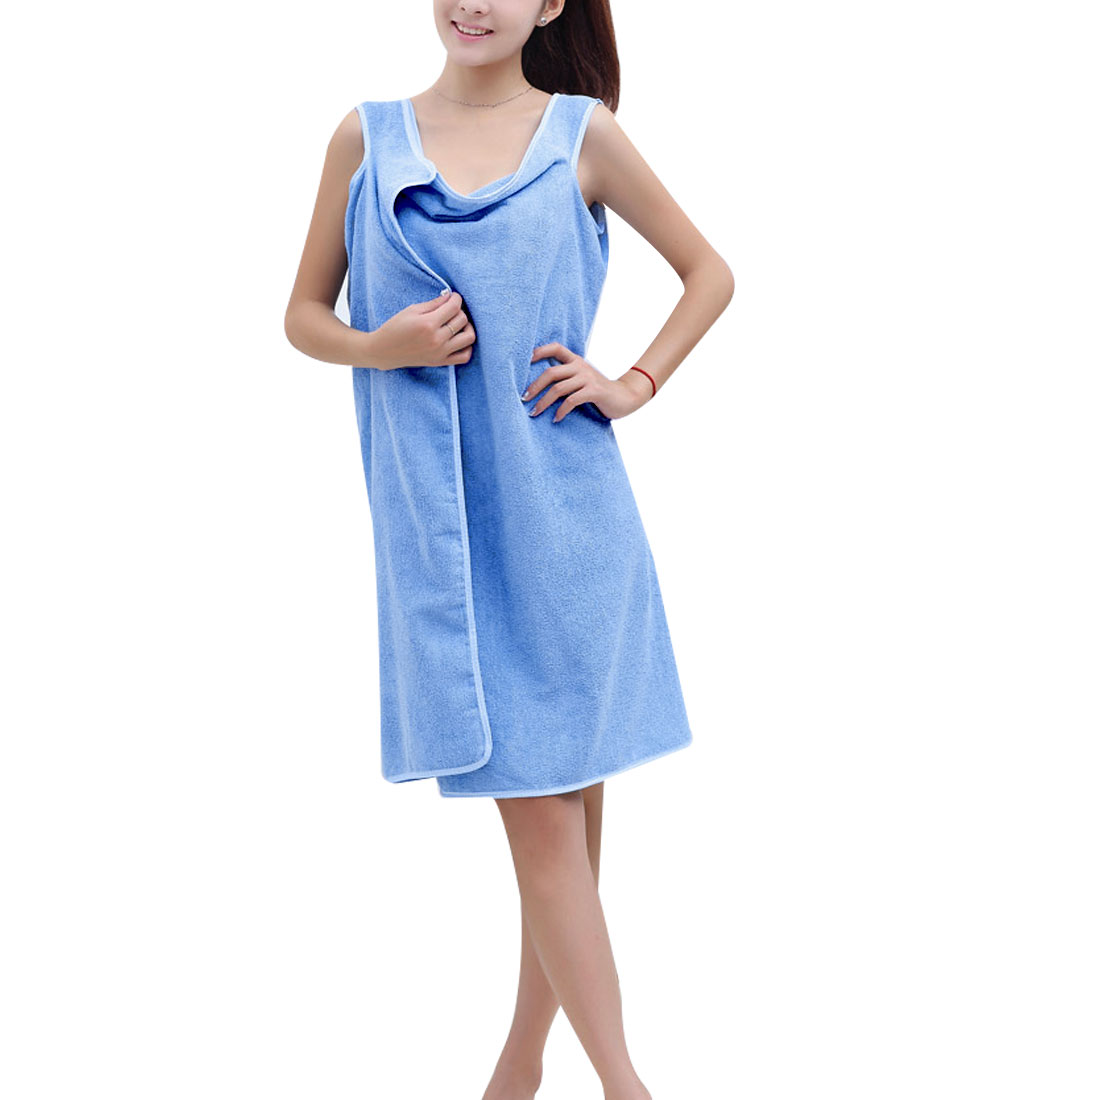 Swimwear Shower Body Spa Bath Wrap Robe Towel Bathrobe Blue for Woman